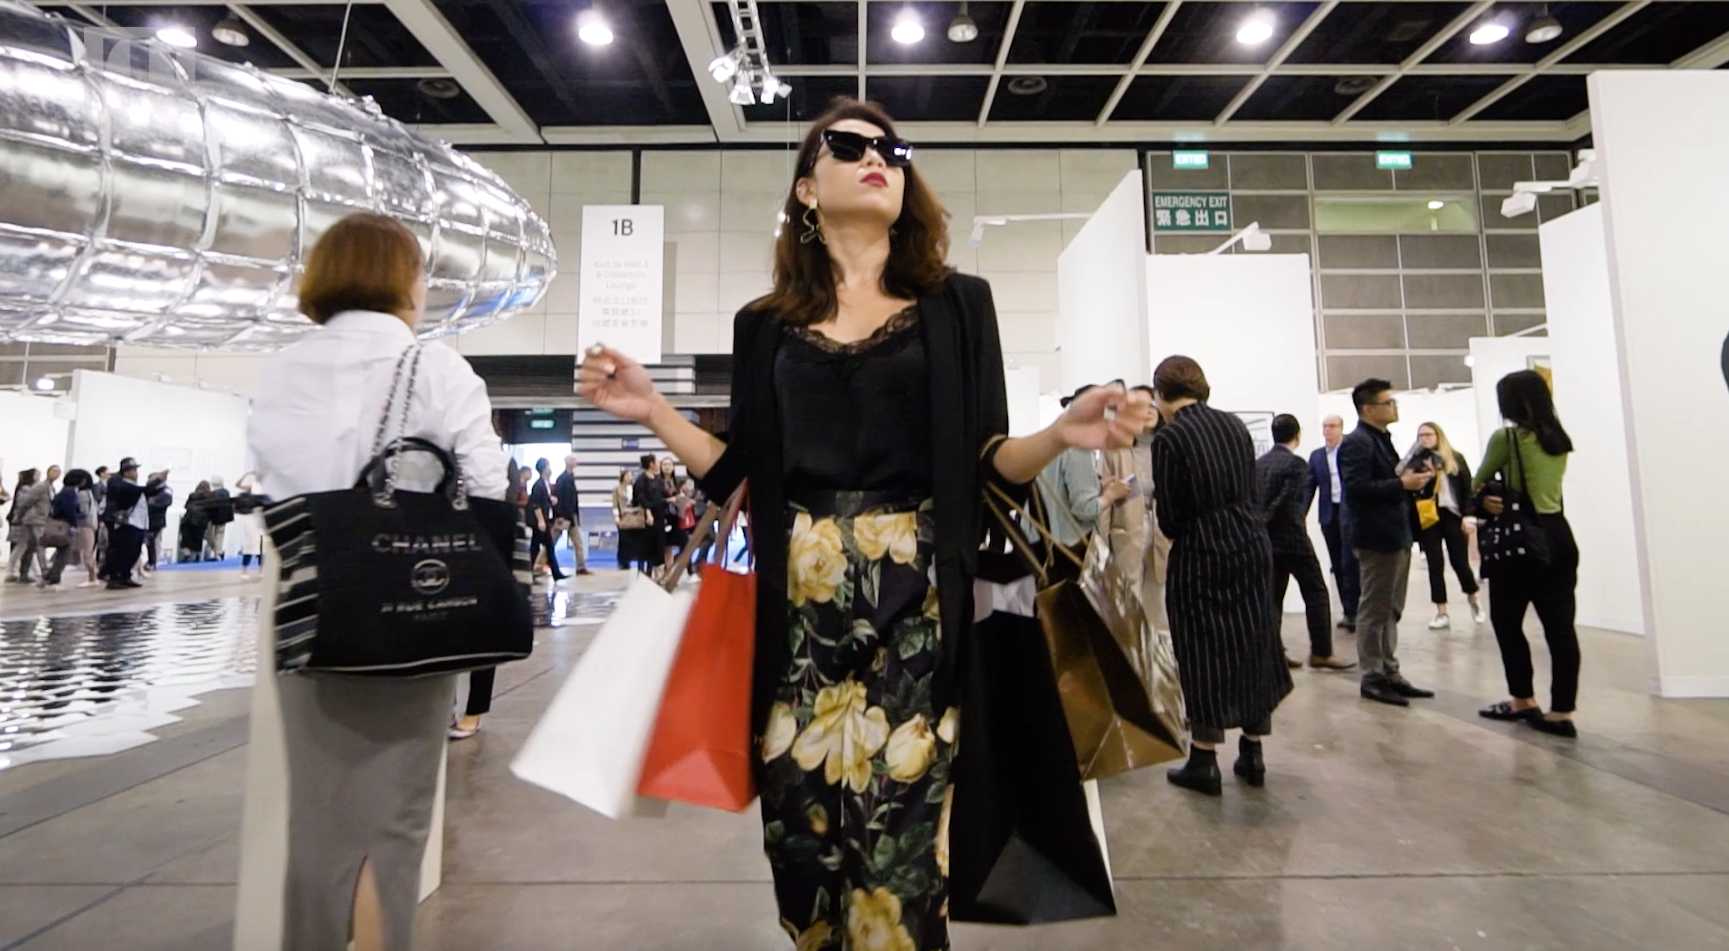 Video: What Not To Do At Art Fairs